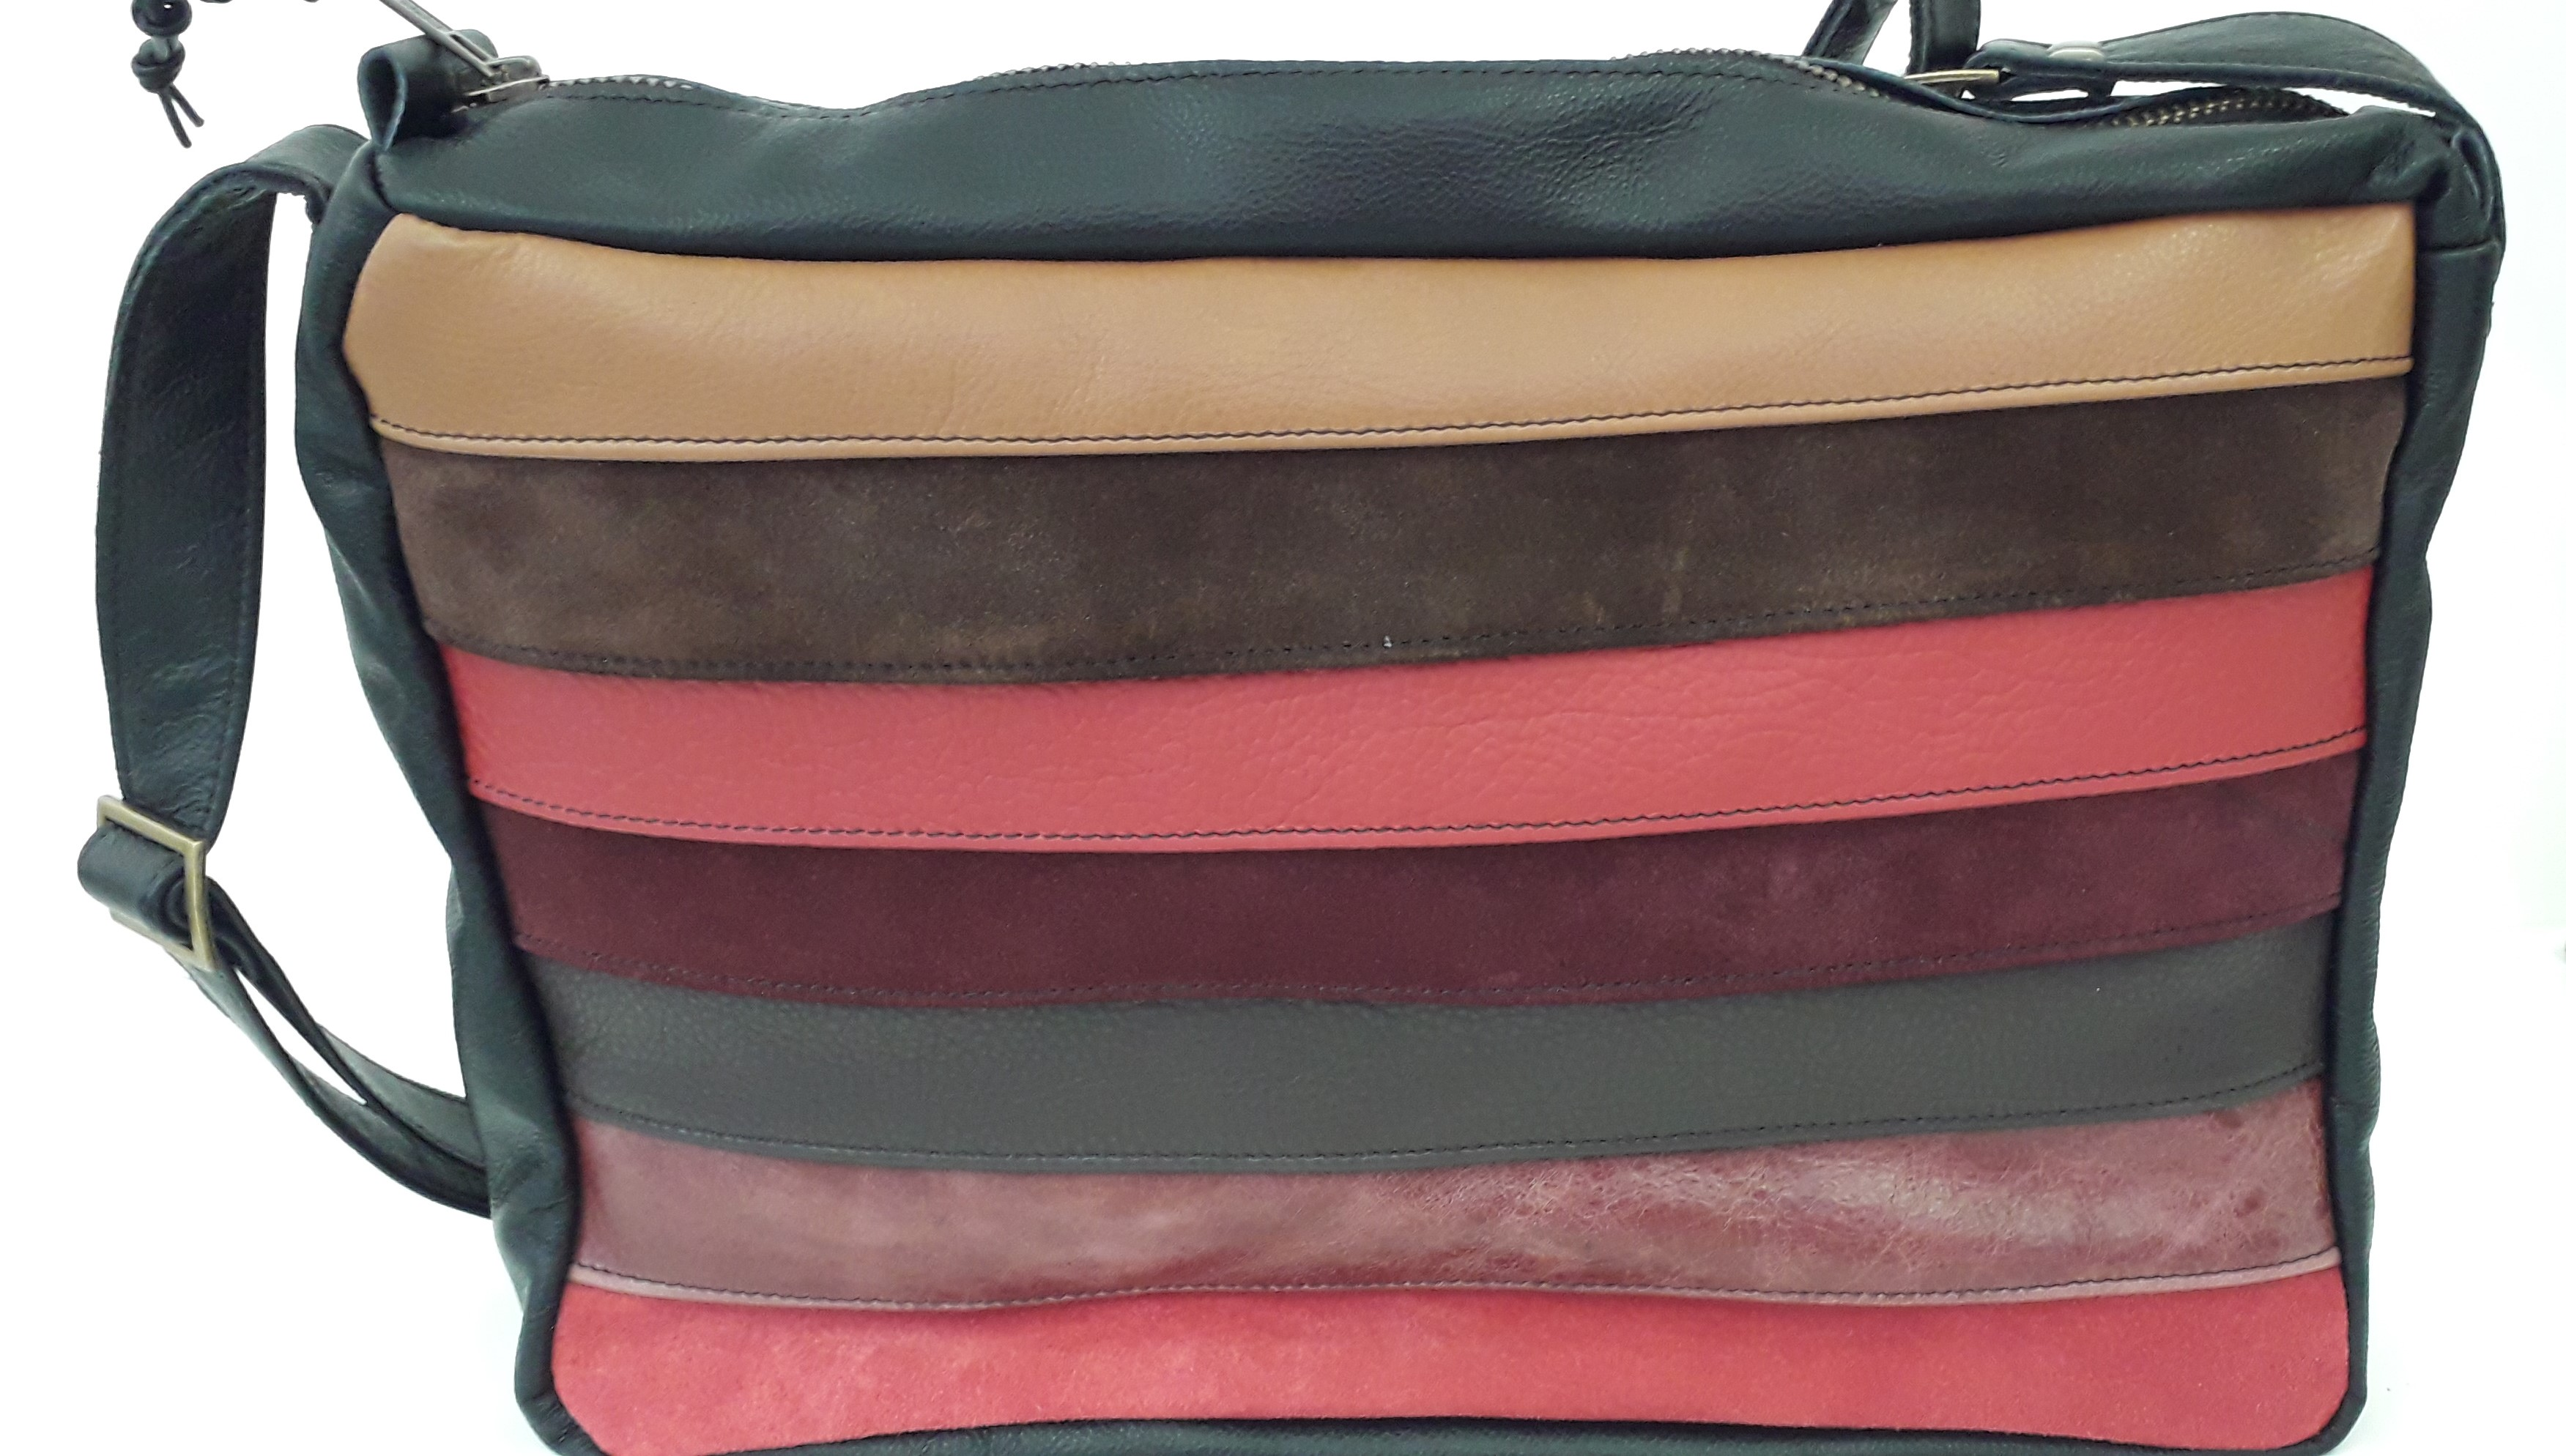 Leather and suede stripe handbag